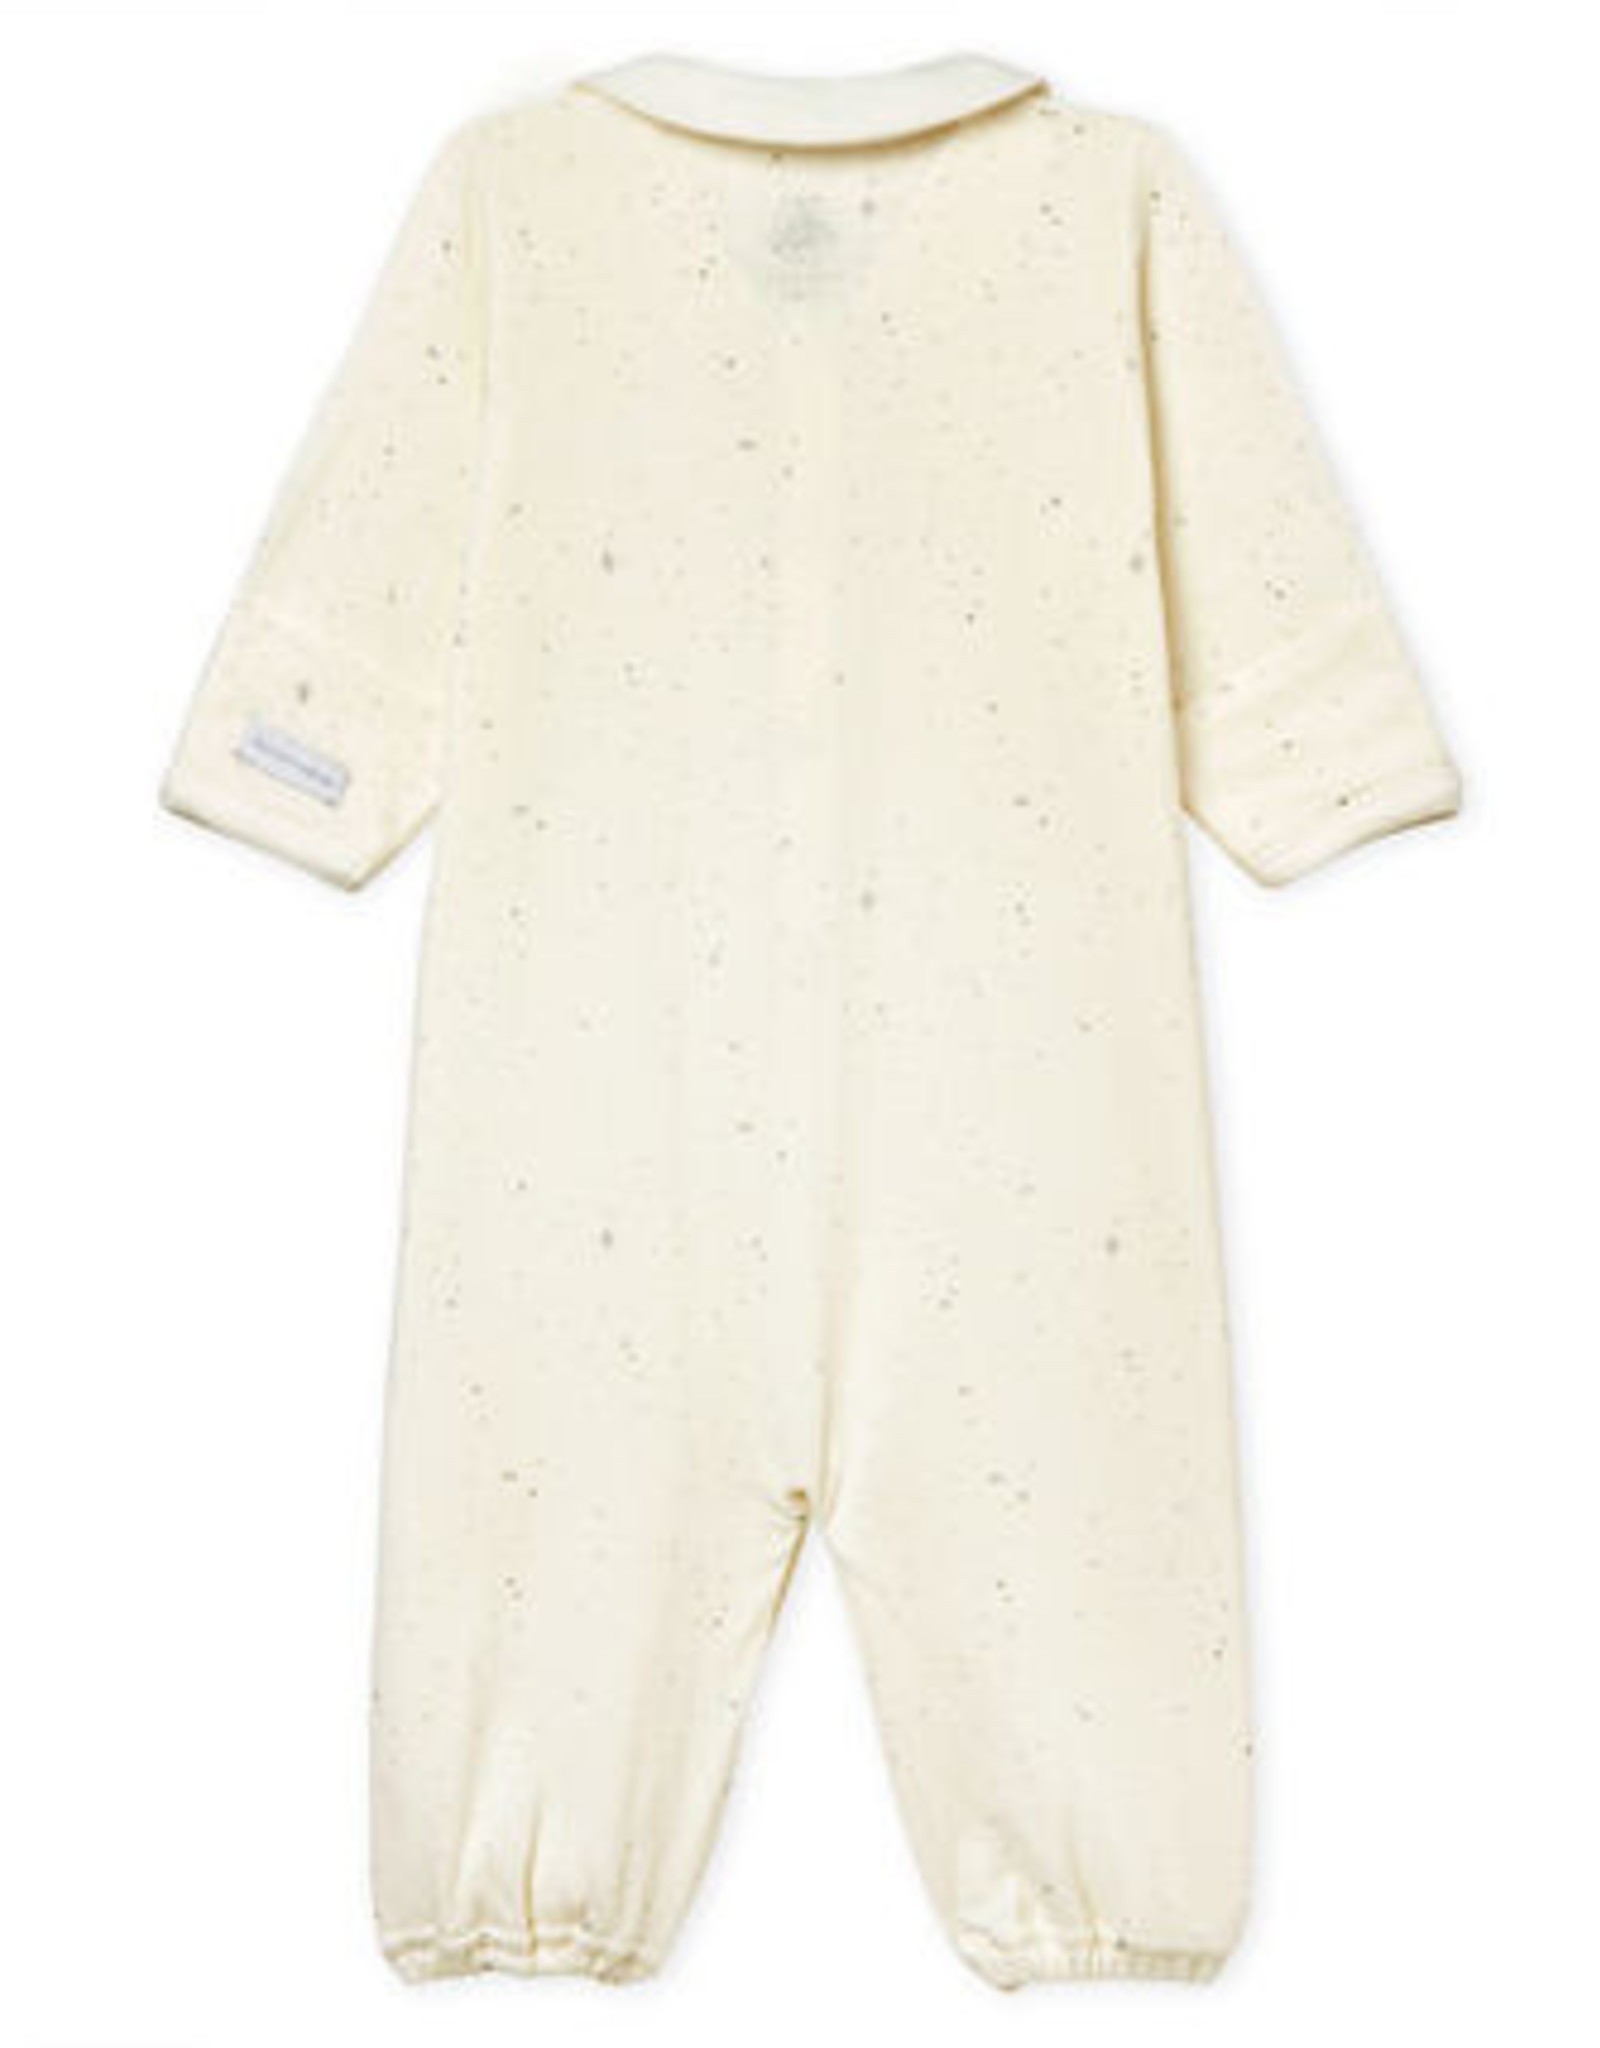 Pajamas-sleeper, stars print